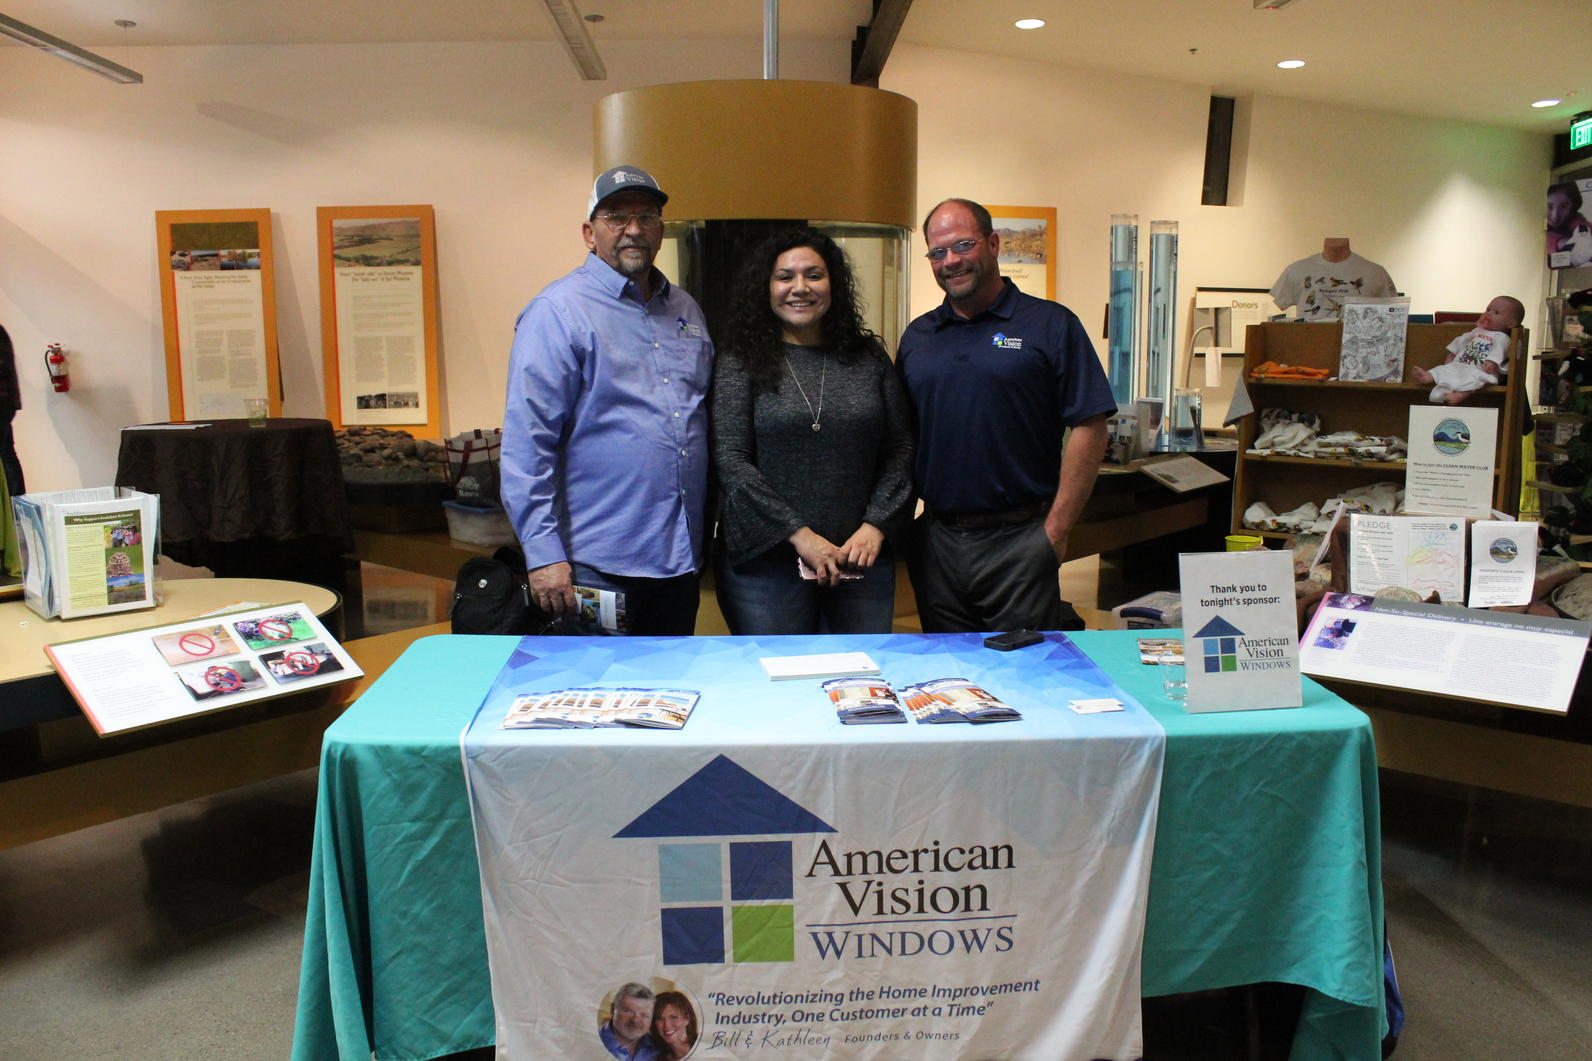 Our sponsors from American Vision Windows stand in front of their table at the end of the night.